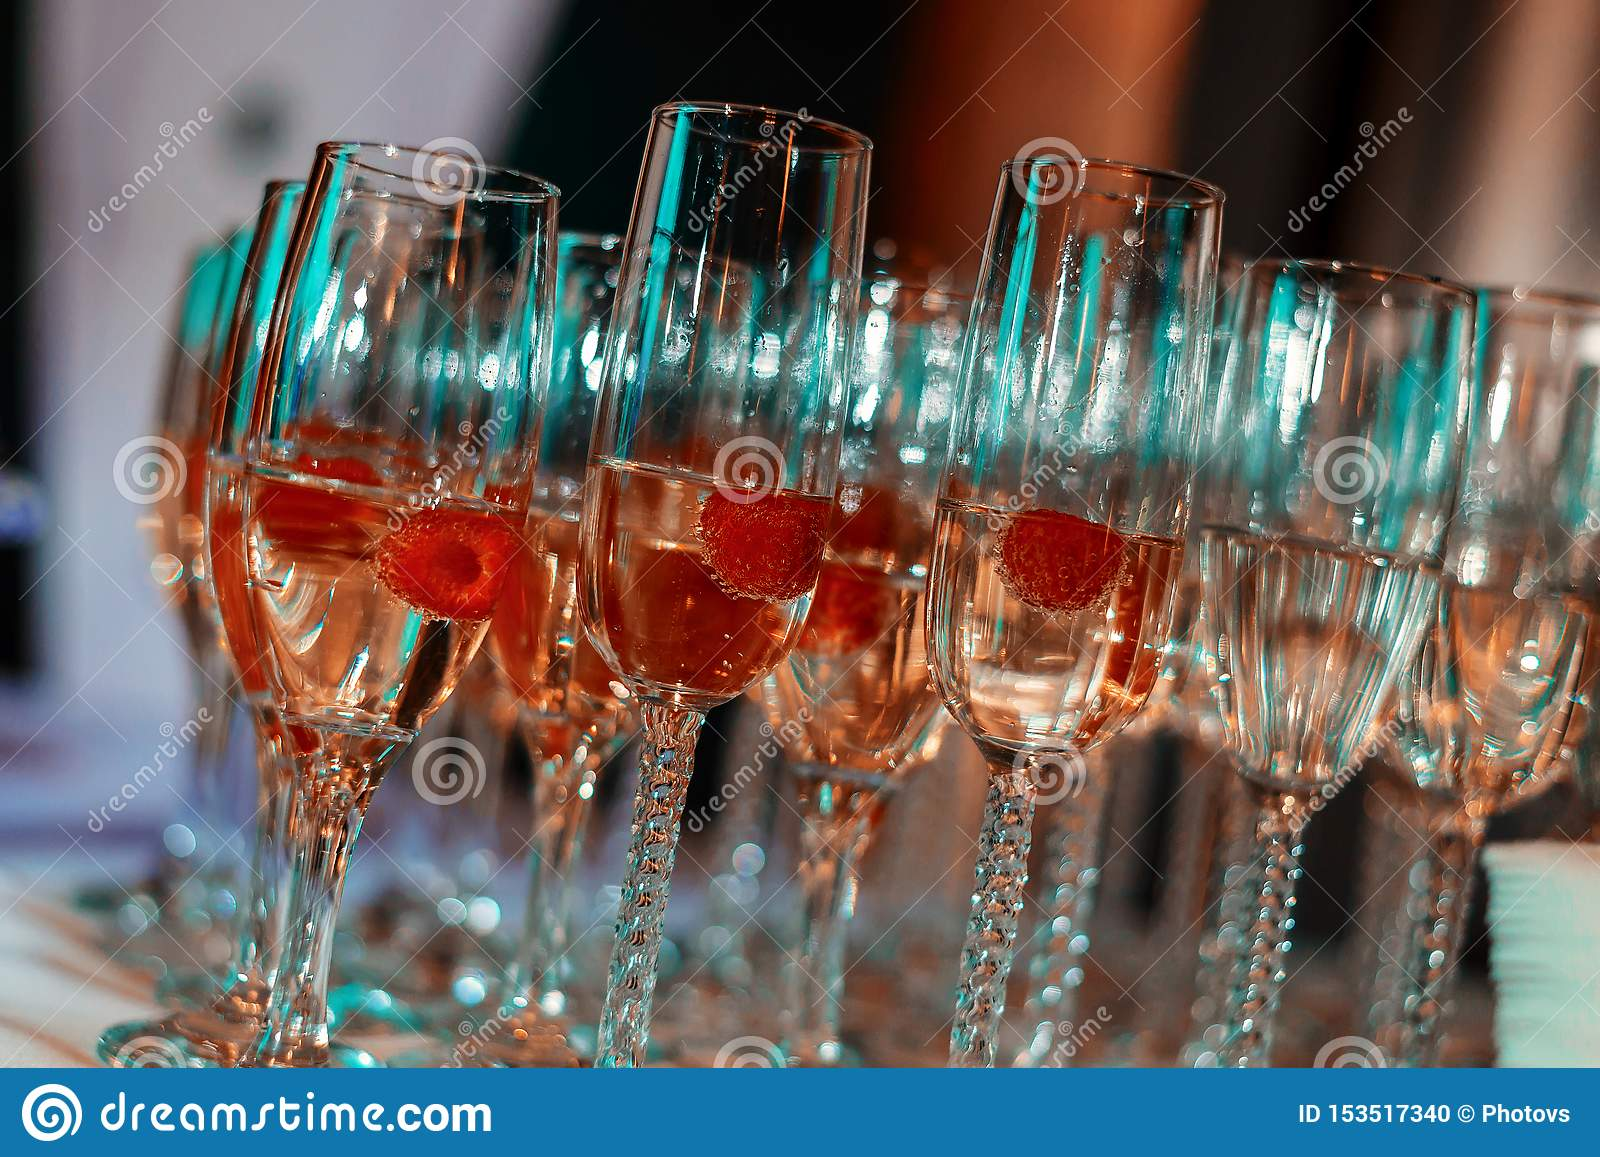 Faire Une Table En Verre verres de vin blanc sur la table, sort de verres photo stock